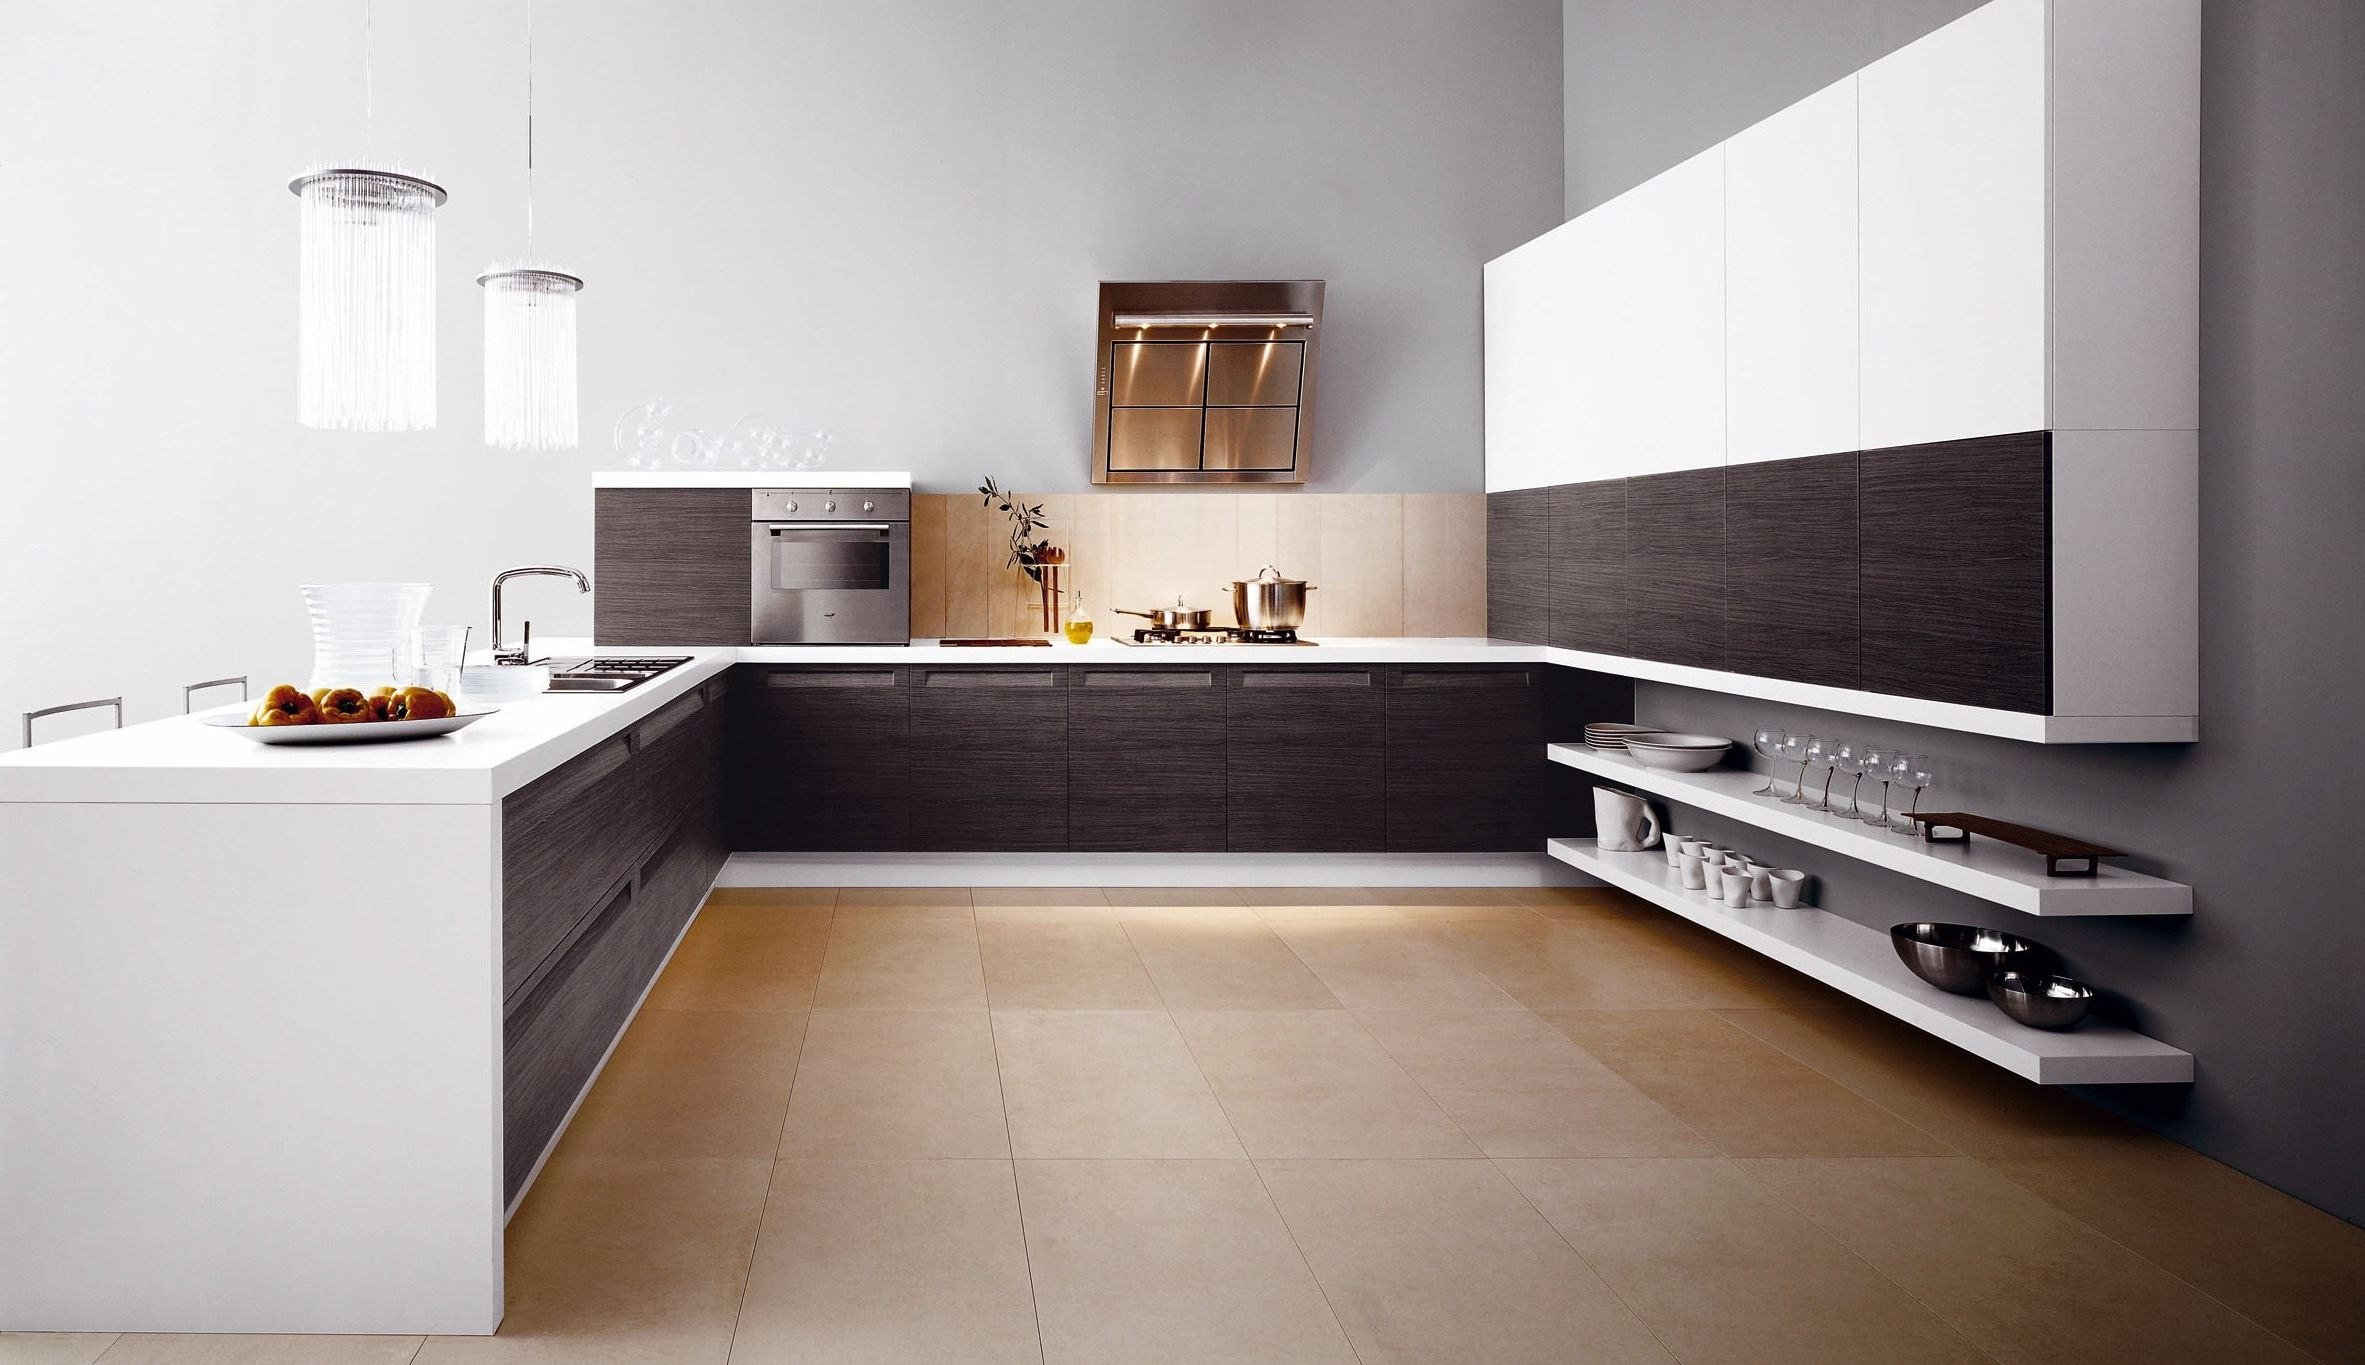 Italian kitchen design ideas midcityeast for Photos of new kitchen designs